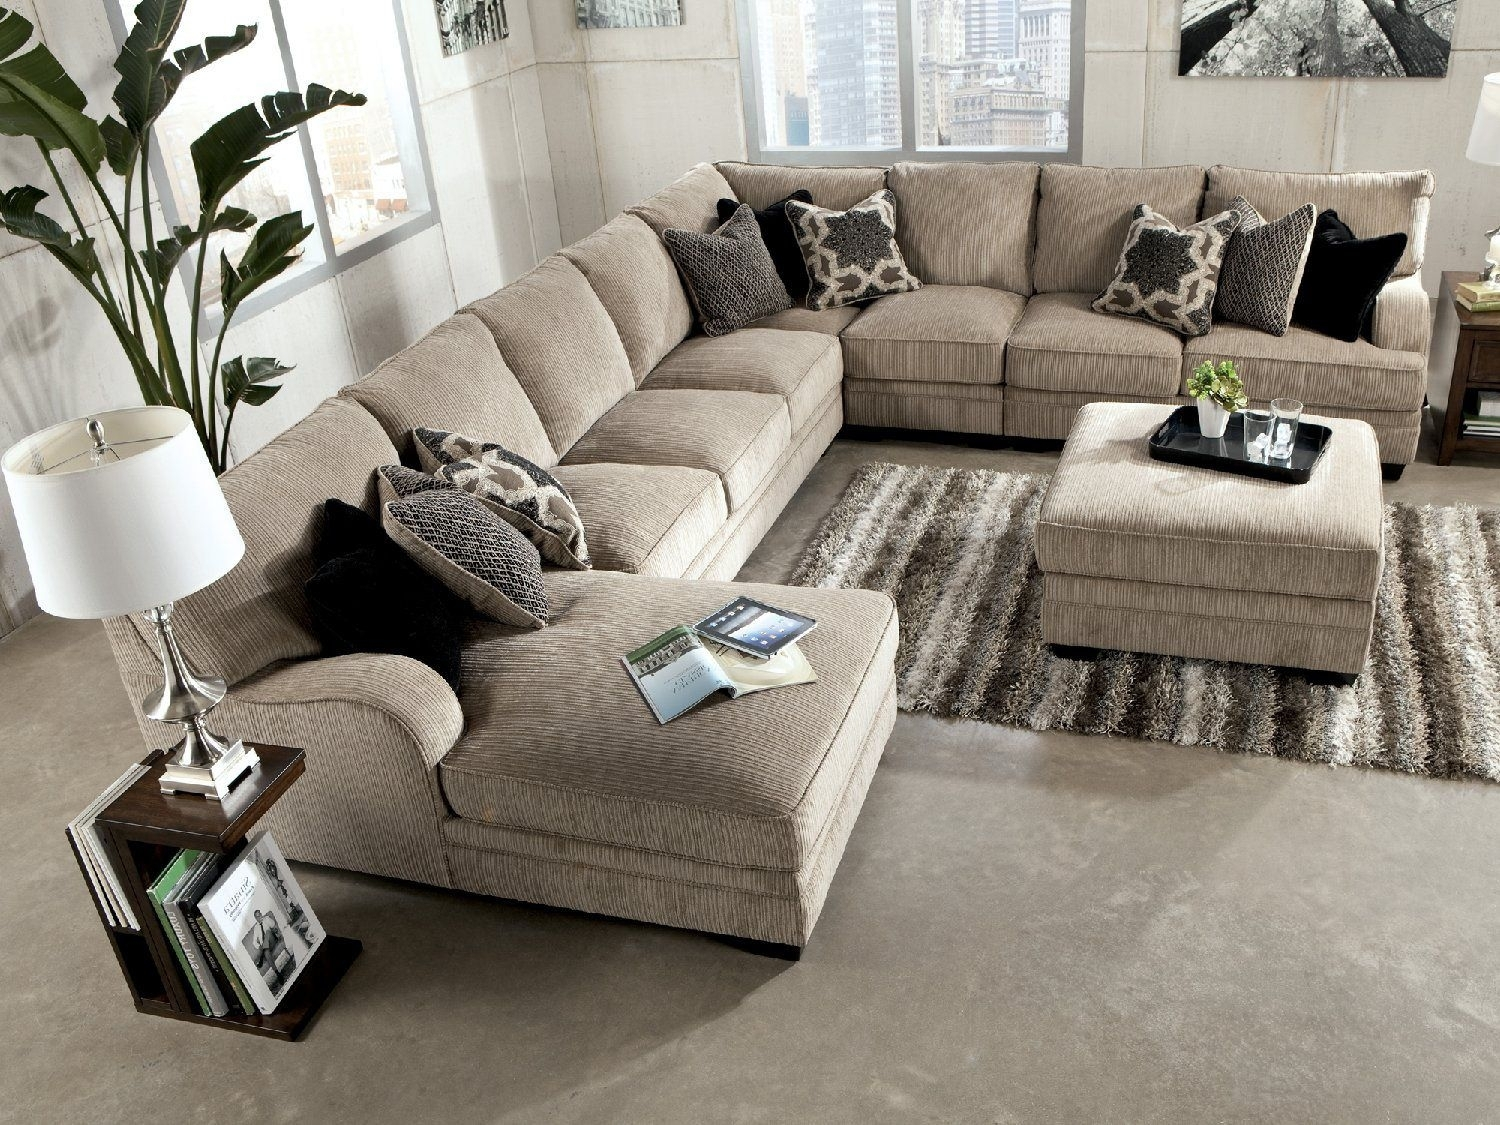 Tisha 6 Piece Sectional Package Including Storage Ottoman | Hom Throughout Jackson Ms Sectional Sofas (Image 10 of 10)